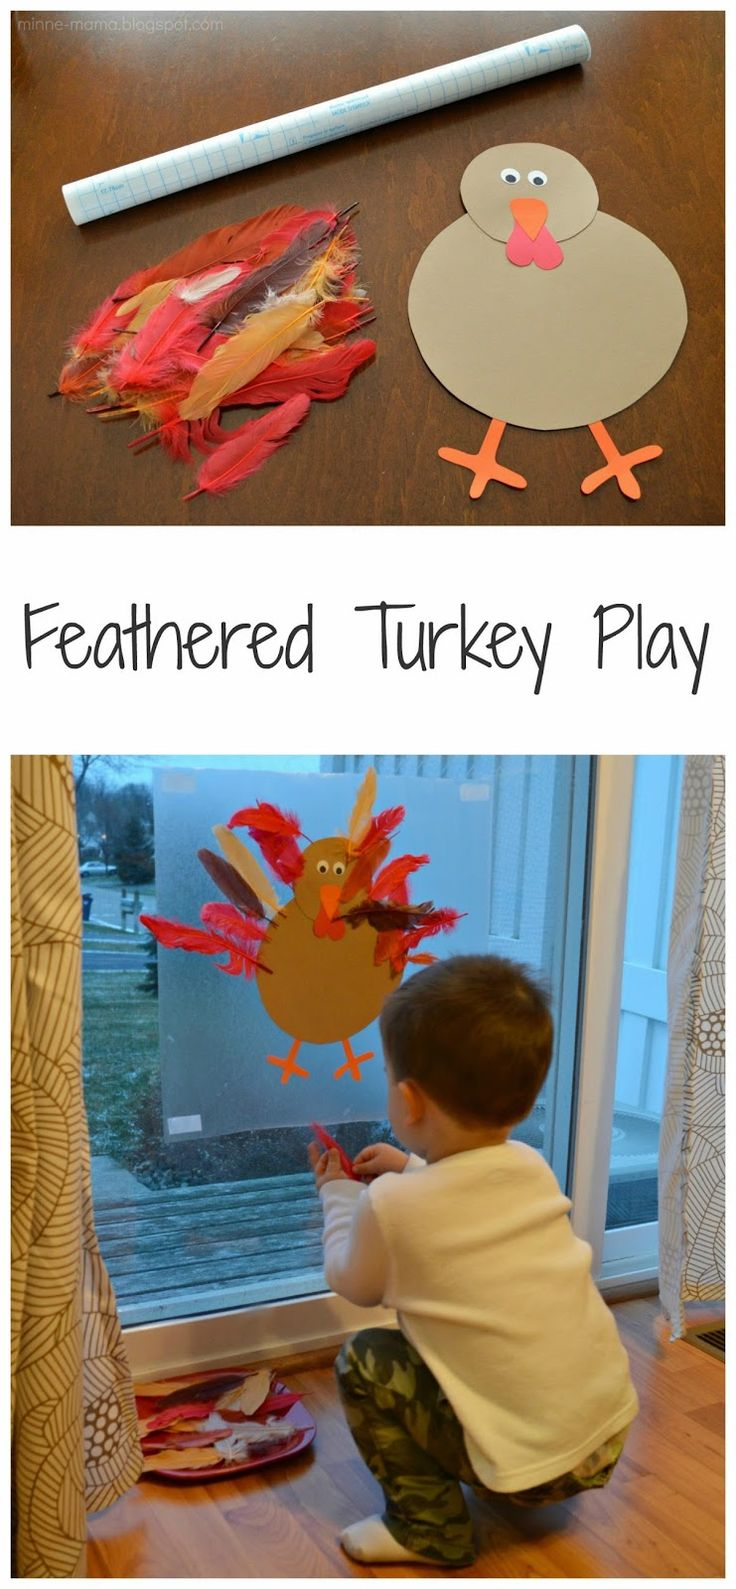 Minne-Mama: Feathered Turkey Play - Fun way to practice fine motor skills and great vertical play.